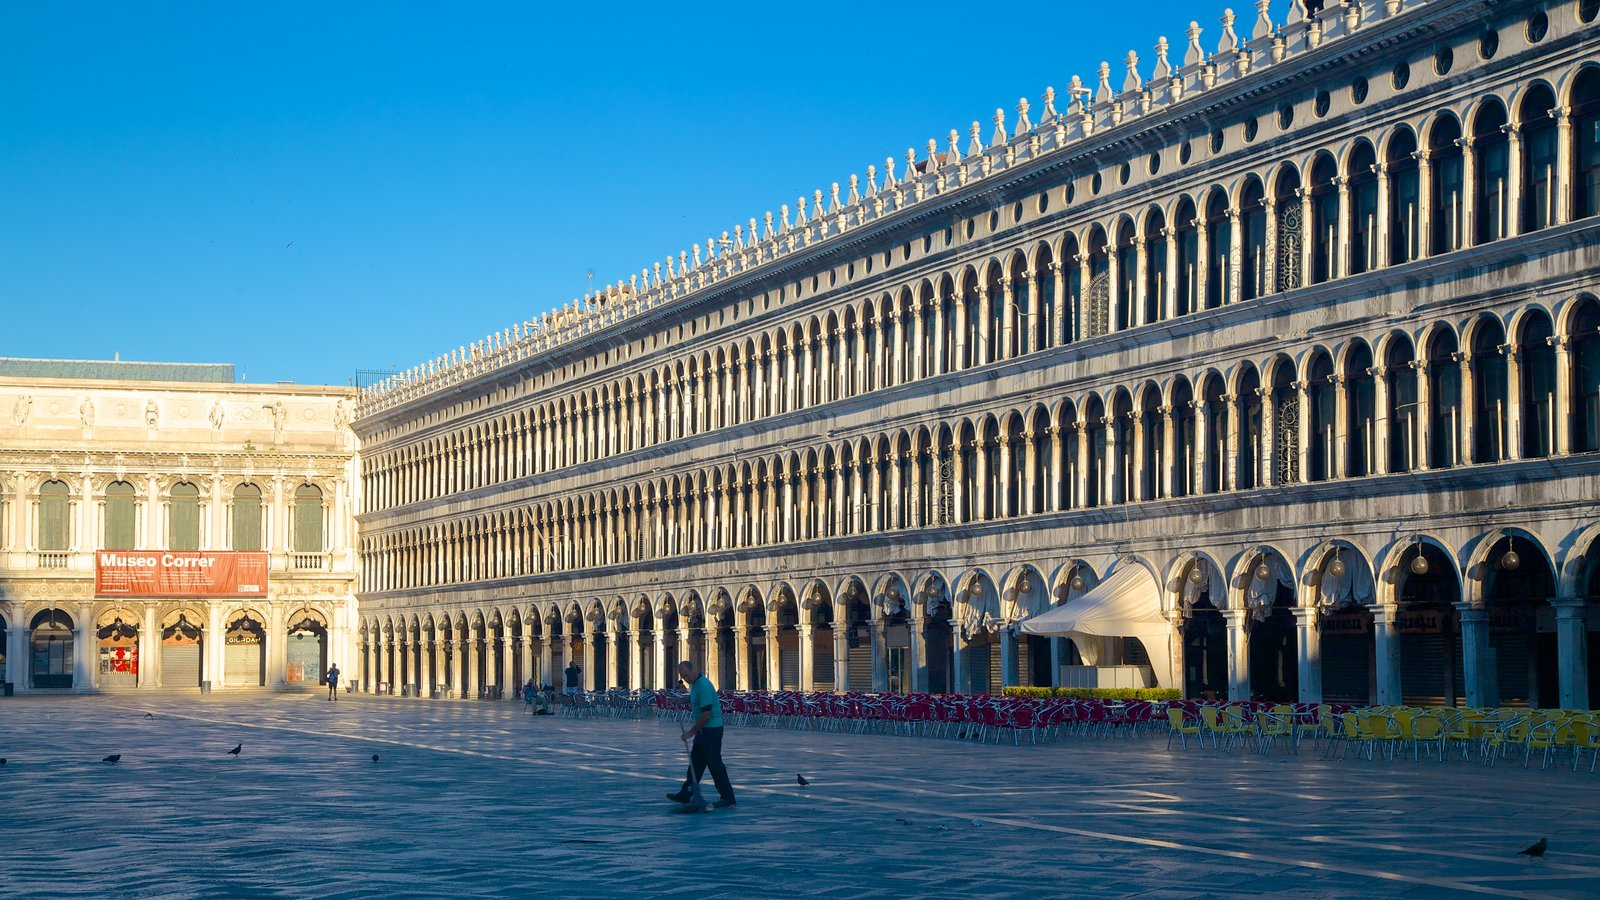 St. Mark\'s Square which includes heritage architecture, a square or plaza and chateau or palace